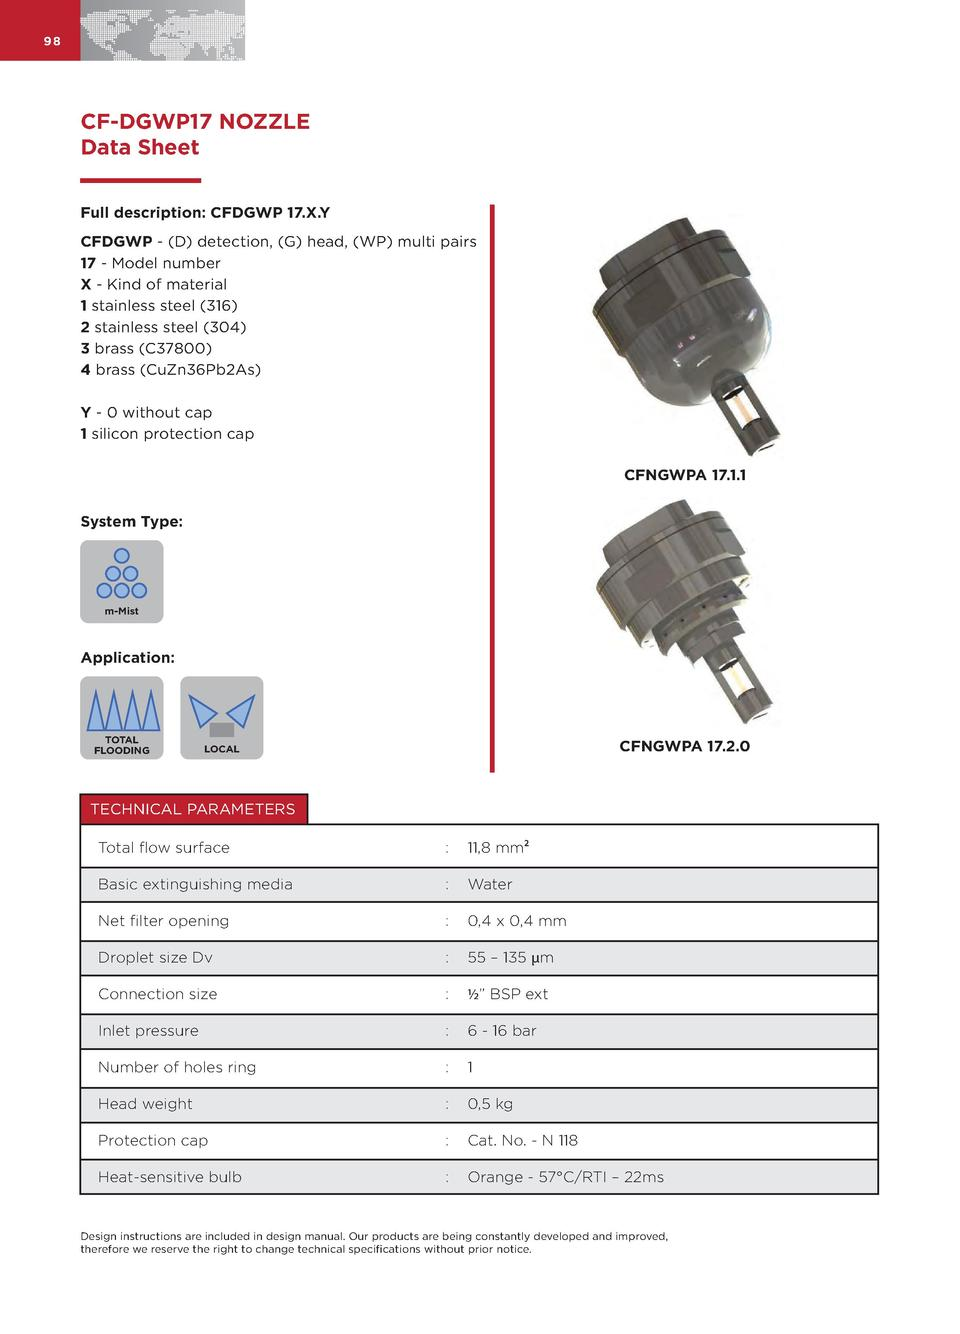 98  CF-DGWP17 NOZZLE Data Sheet Full description  CFDGWP 17.X.Y CFDGWP -  D  detection,  G  head,  WP  multi pairs 17 - Mo...